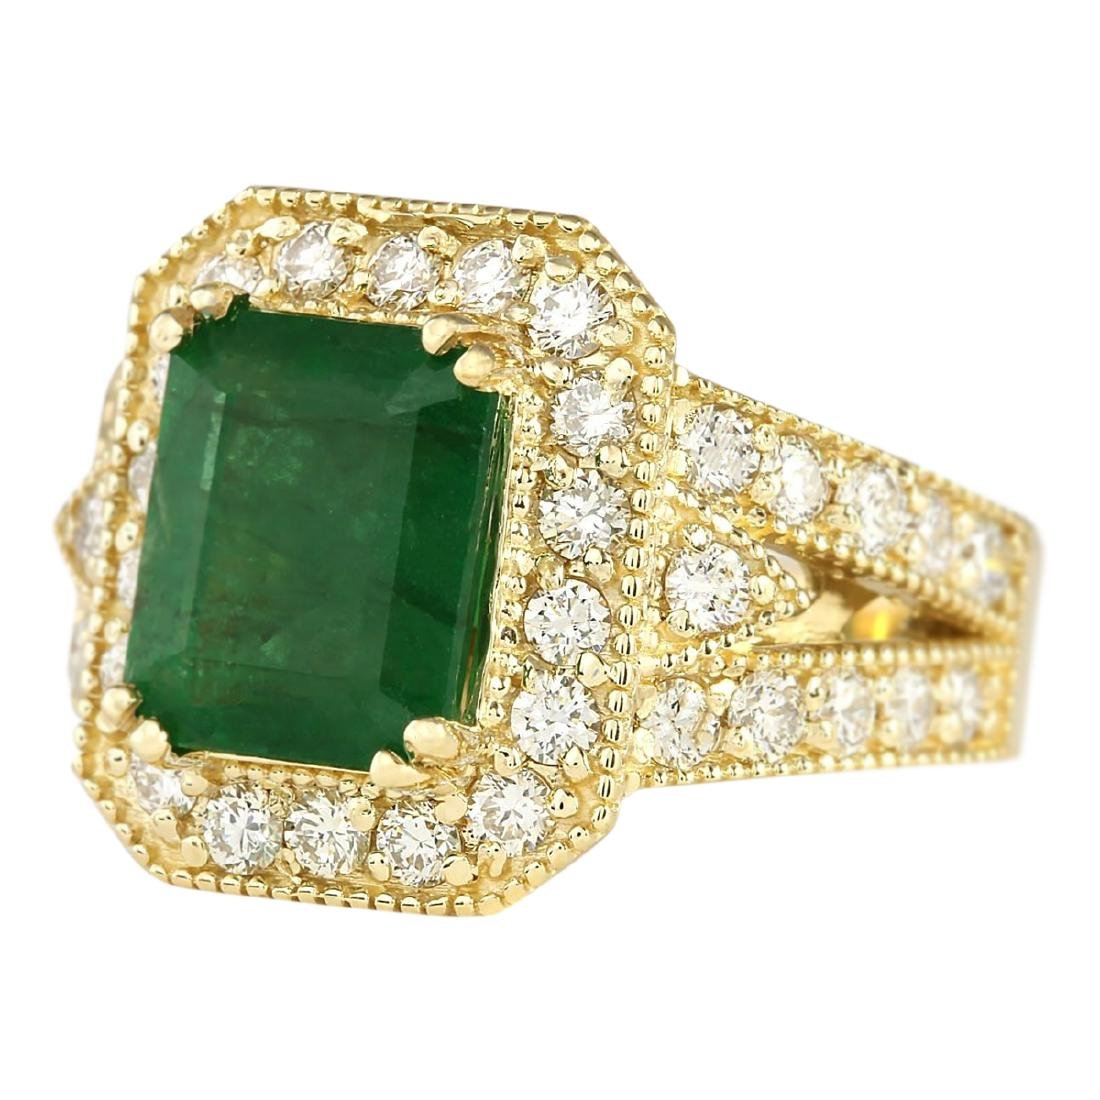 4.83 CTW Natural Emerald And Diamond Ring In 18K Yellow - 2